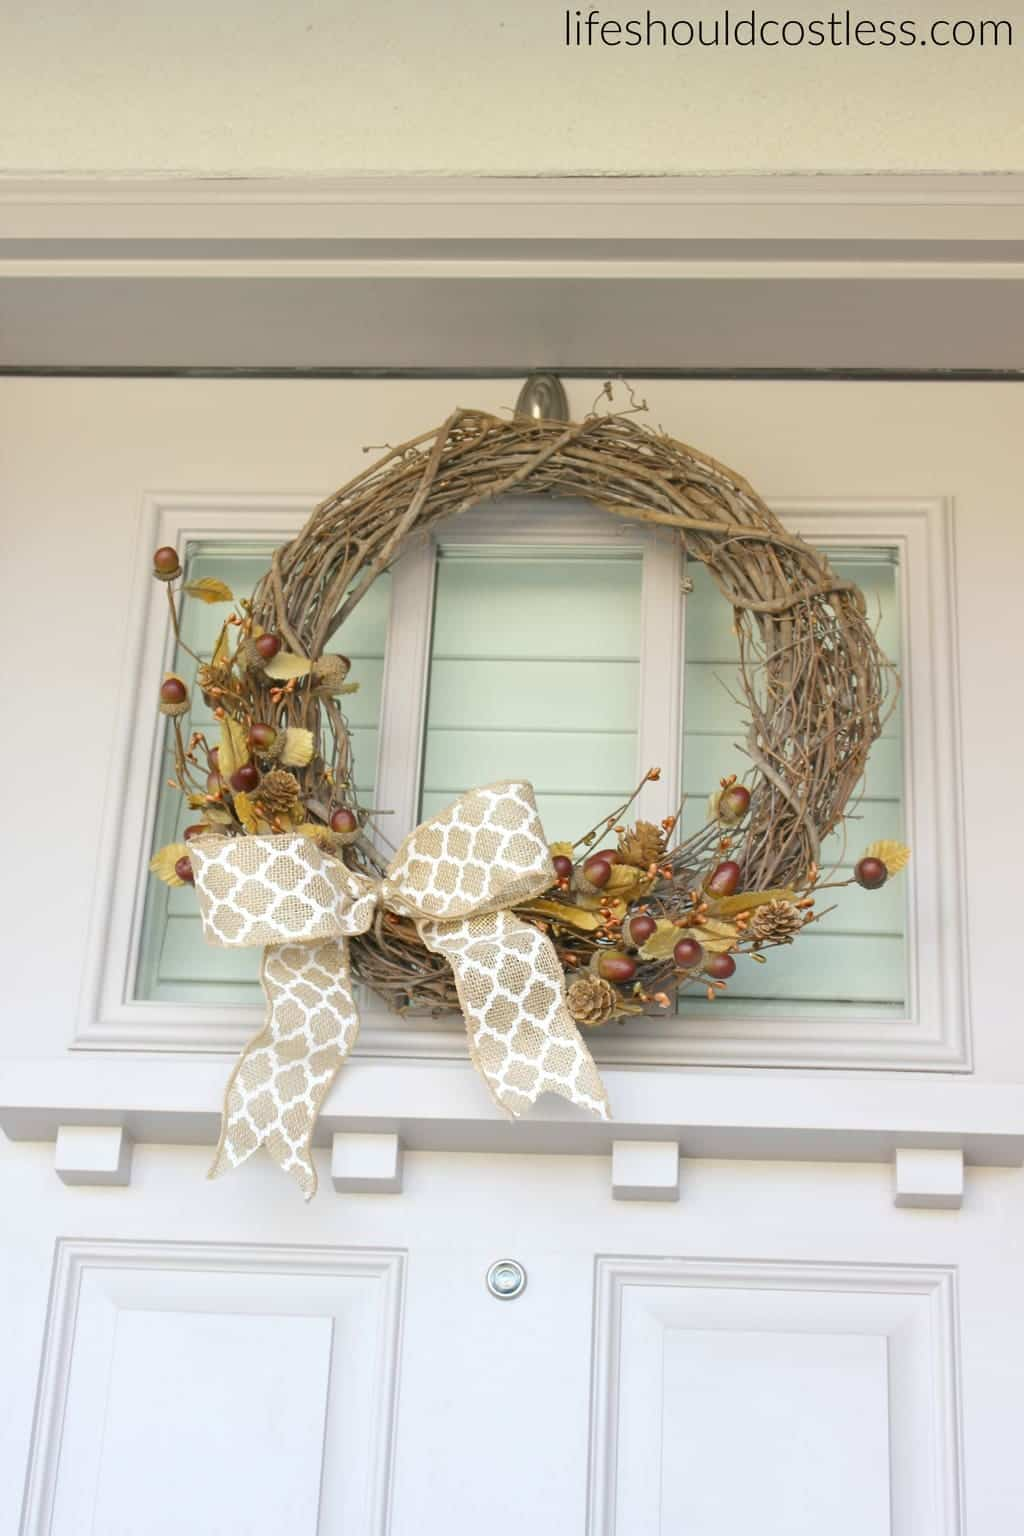 Rustic fall porch decor reveal. See this post and many more popular decor pins at lifeshouldcostless.com. Simple fall wreath.